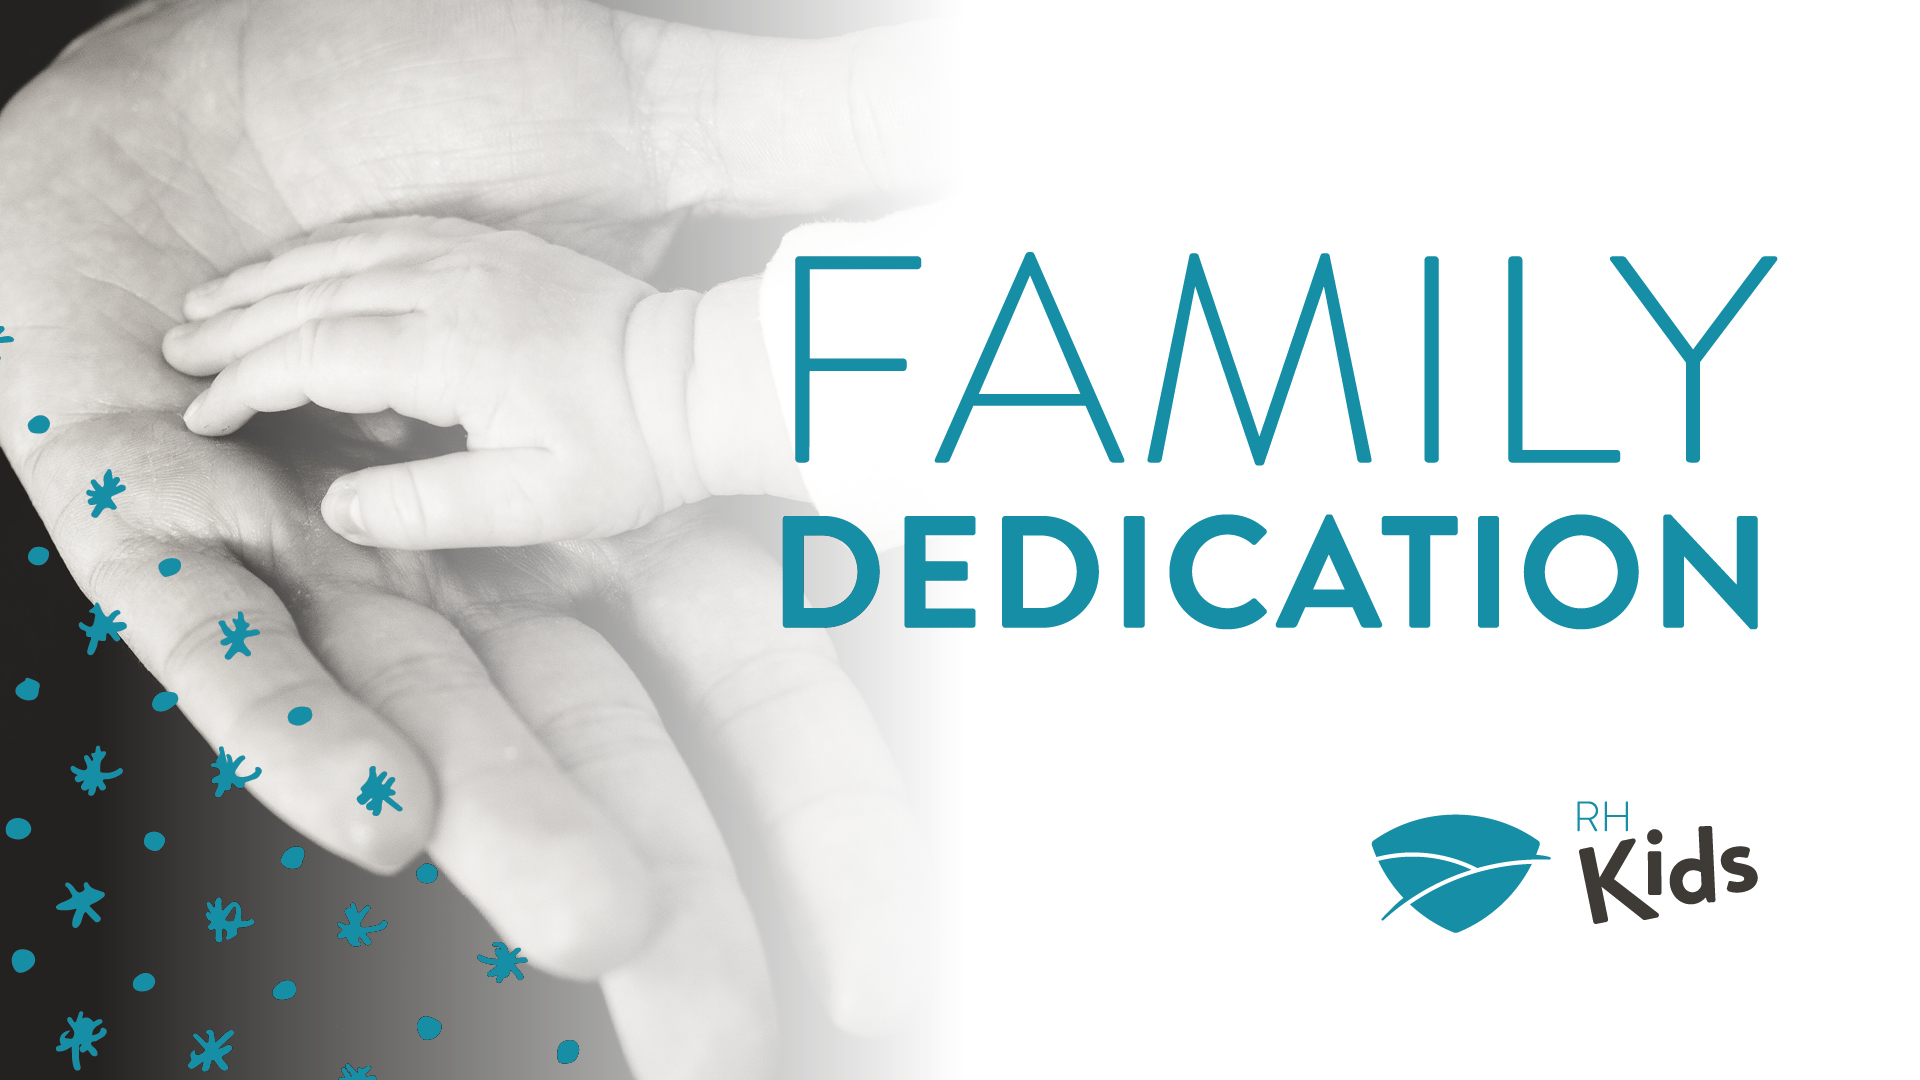 Family dedication 2016 event banner